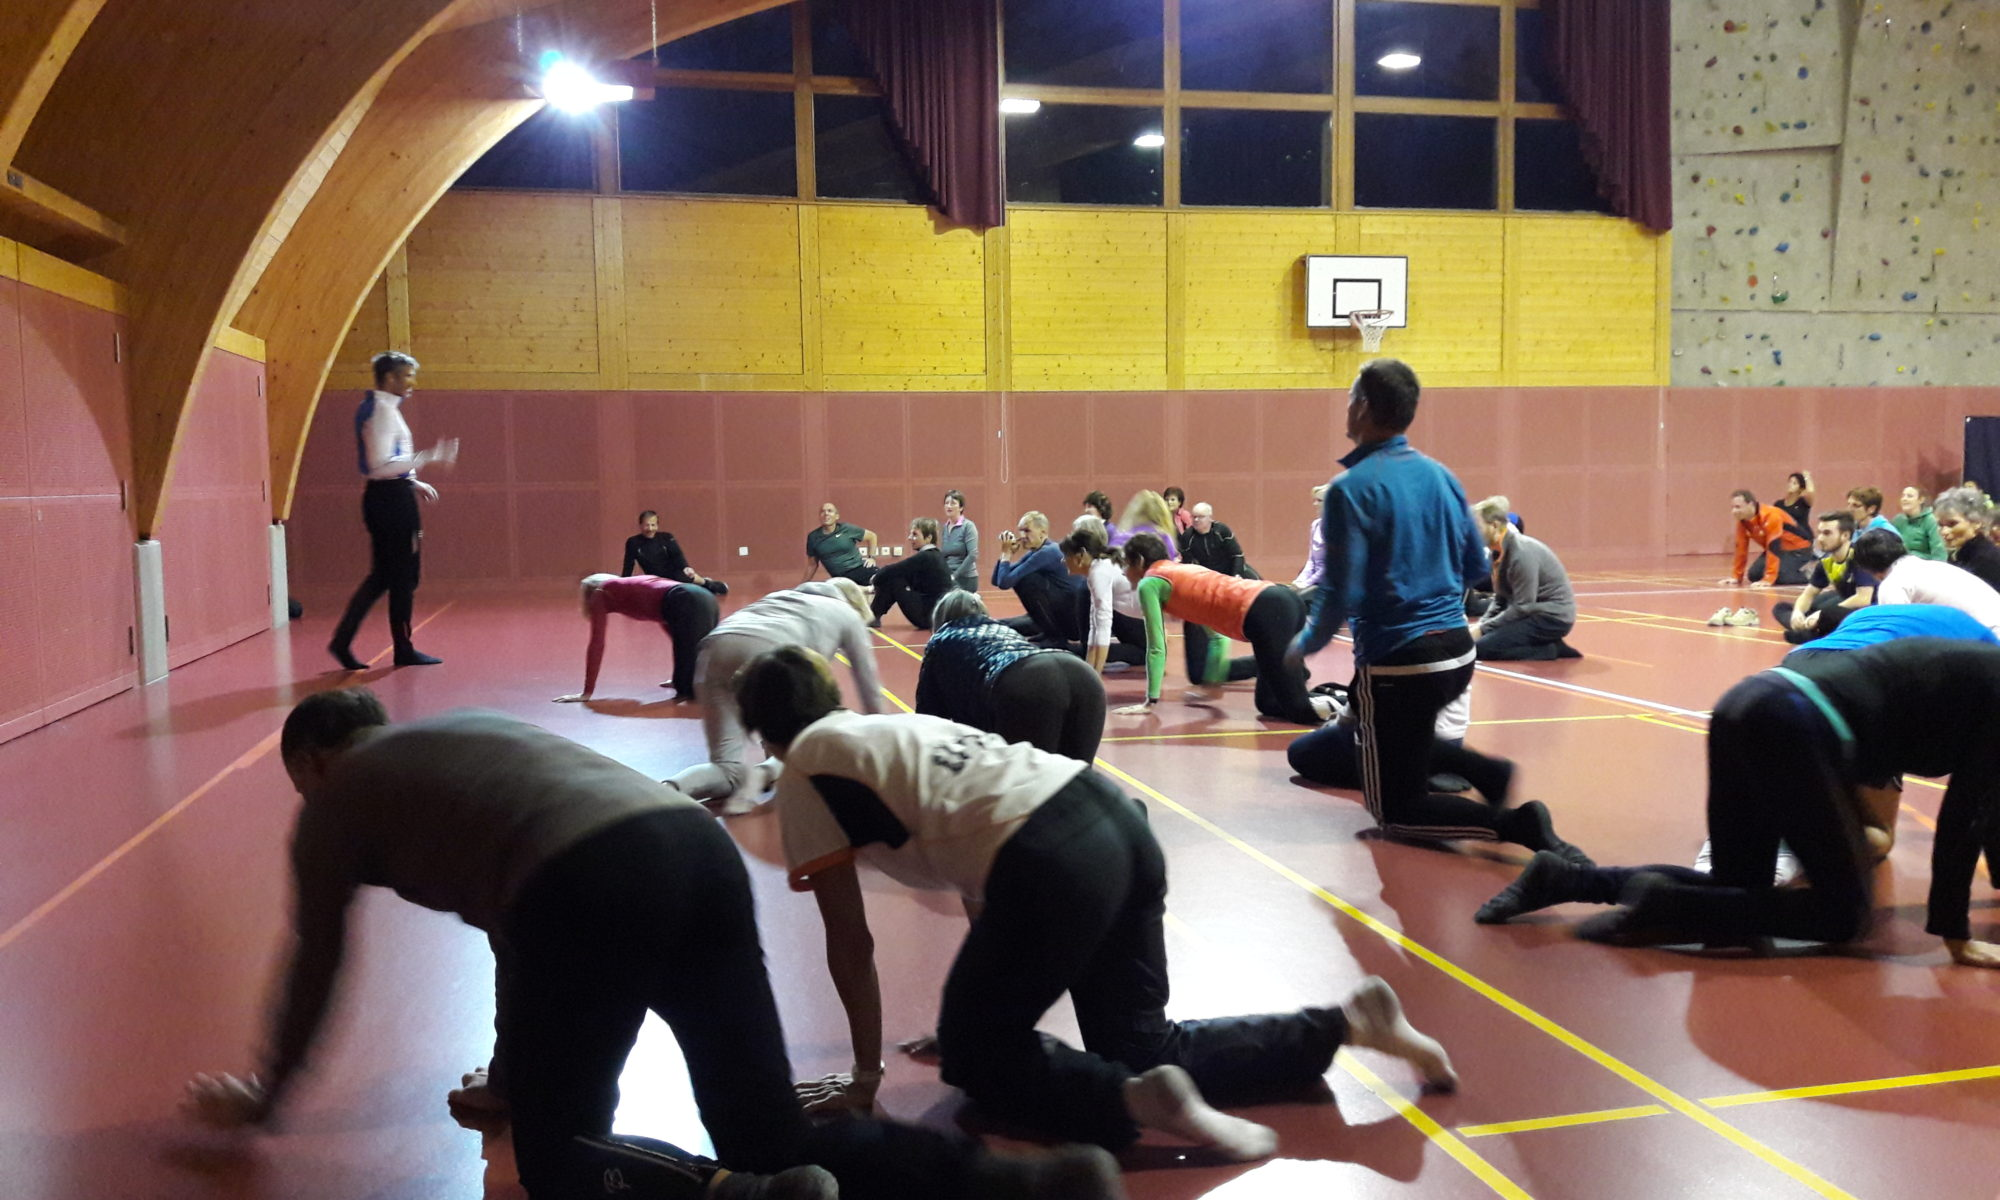 Sporttherapie, Bewegungstherapie, Seminar, Workshop